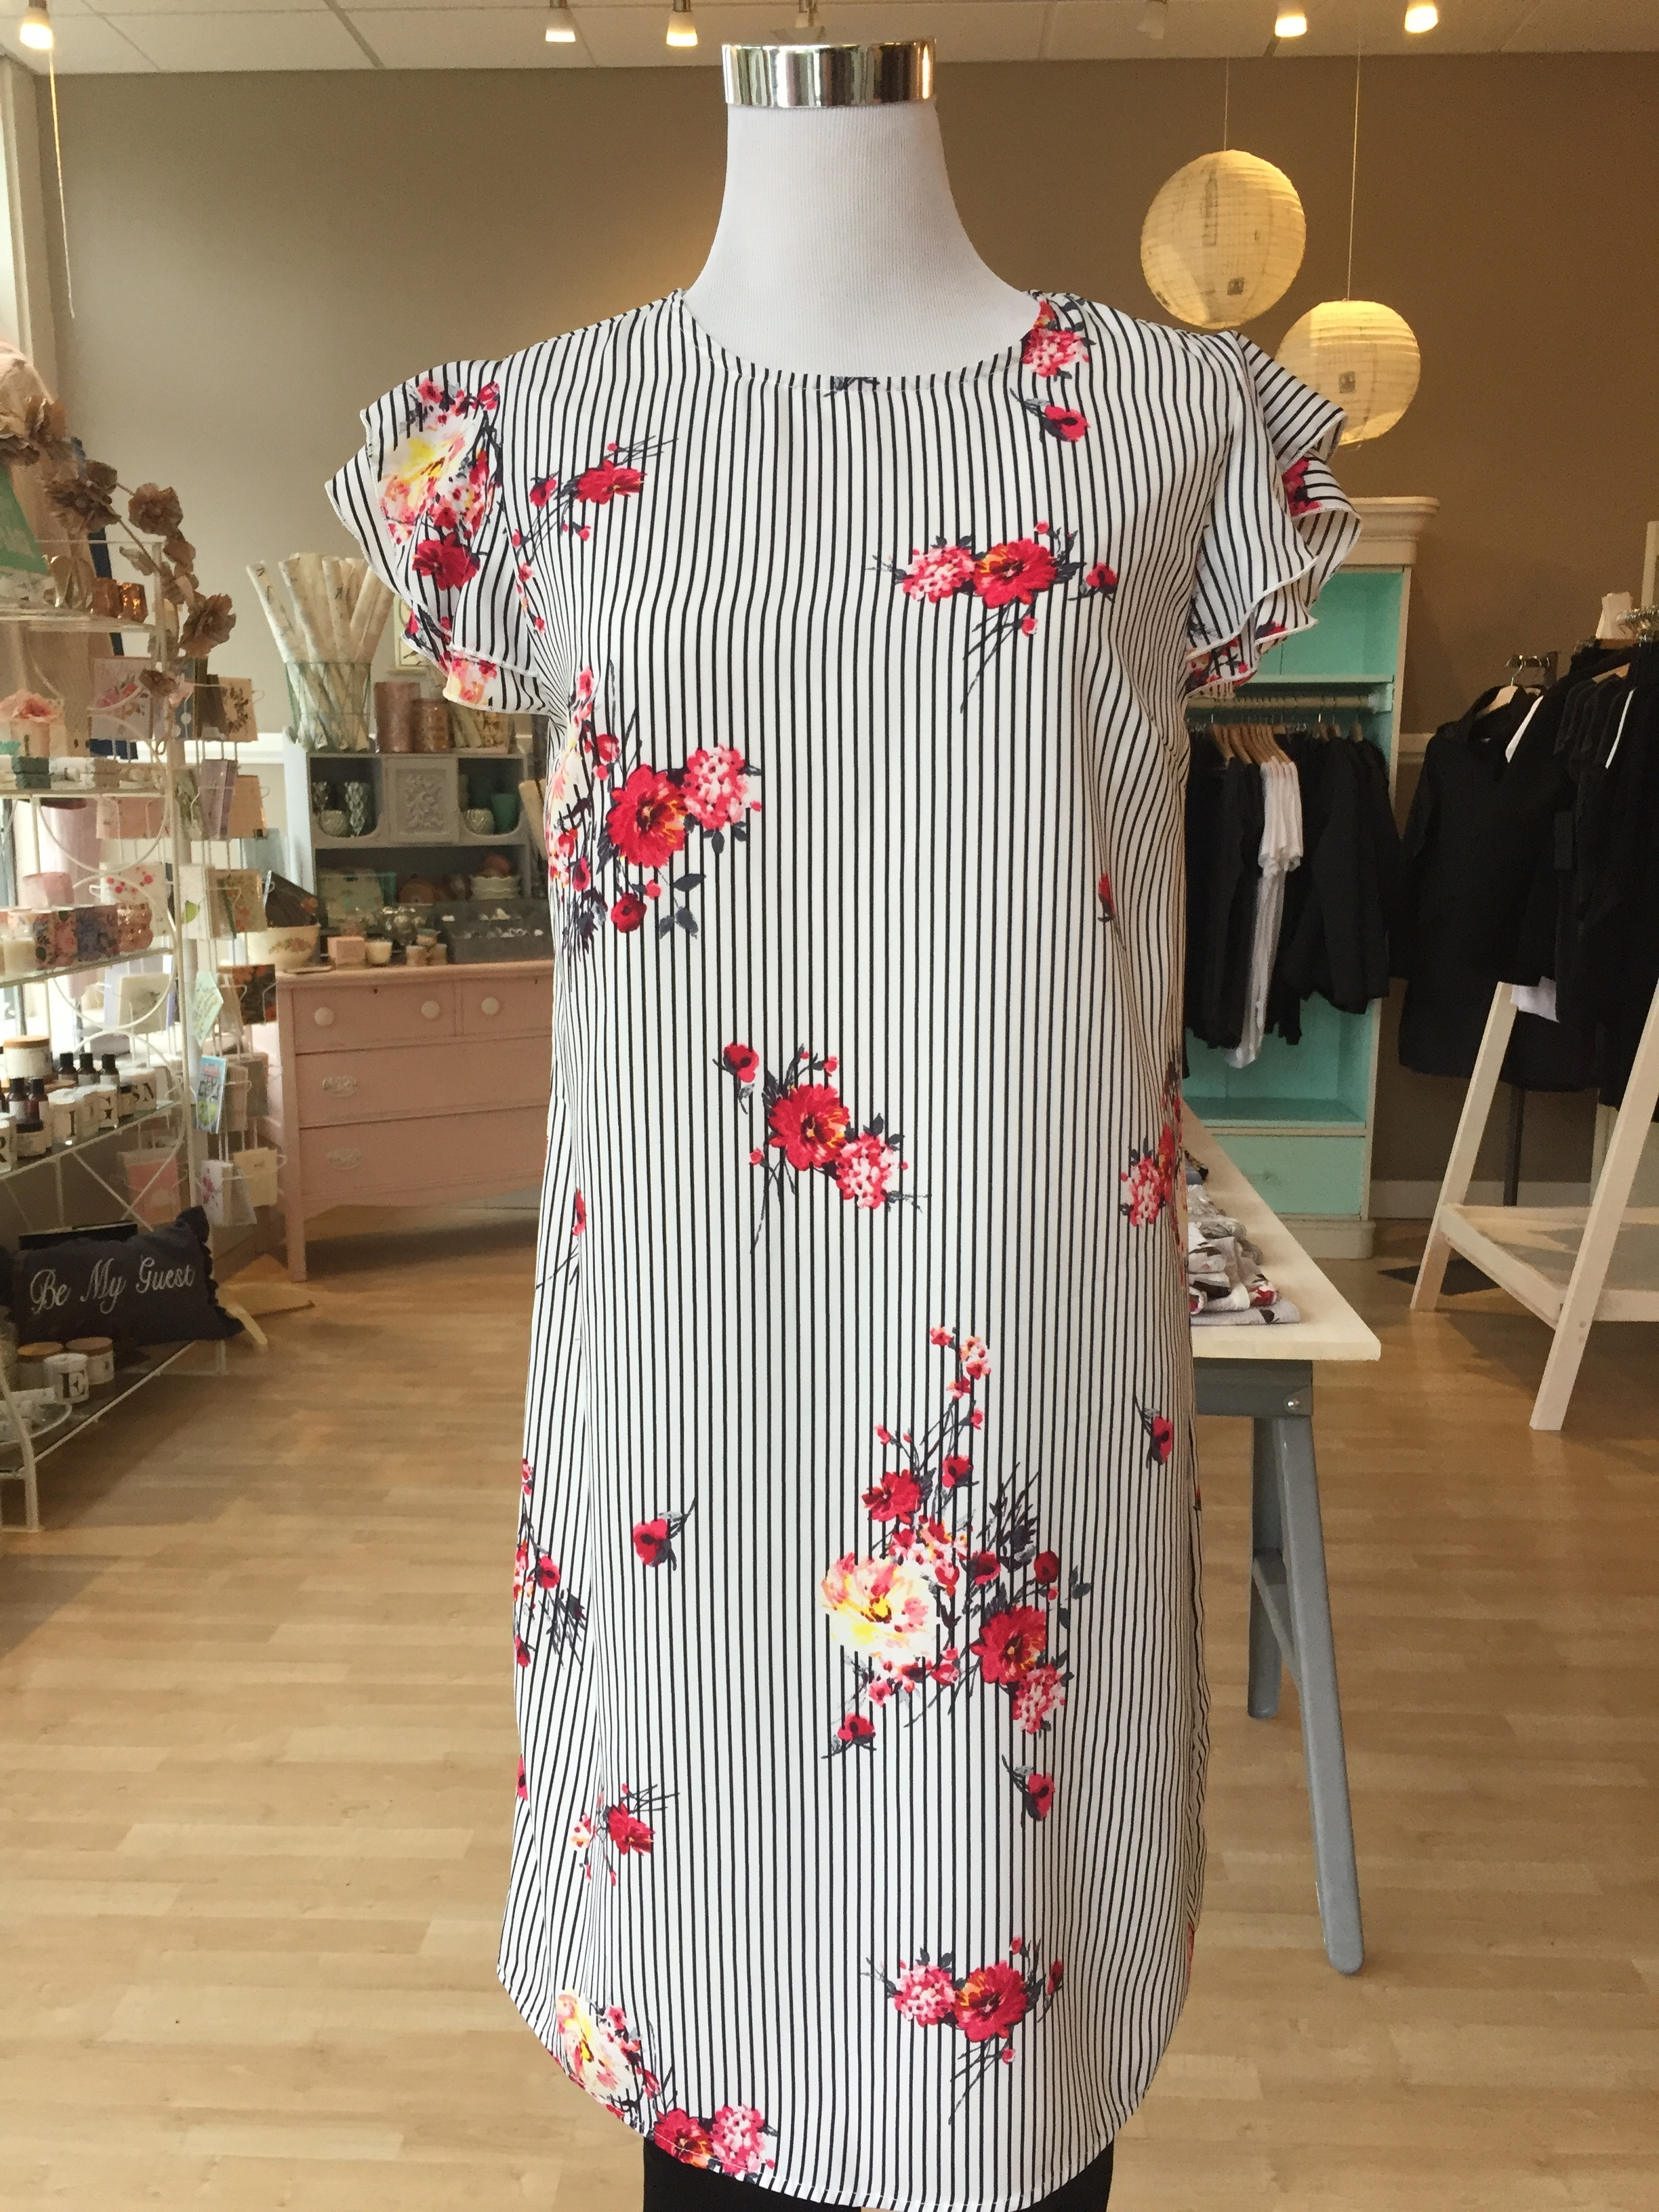 Floral and Stripe Dress $45